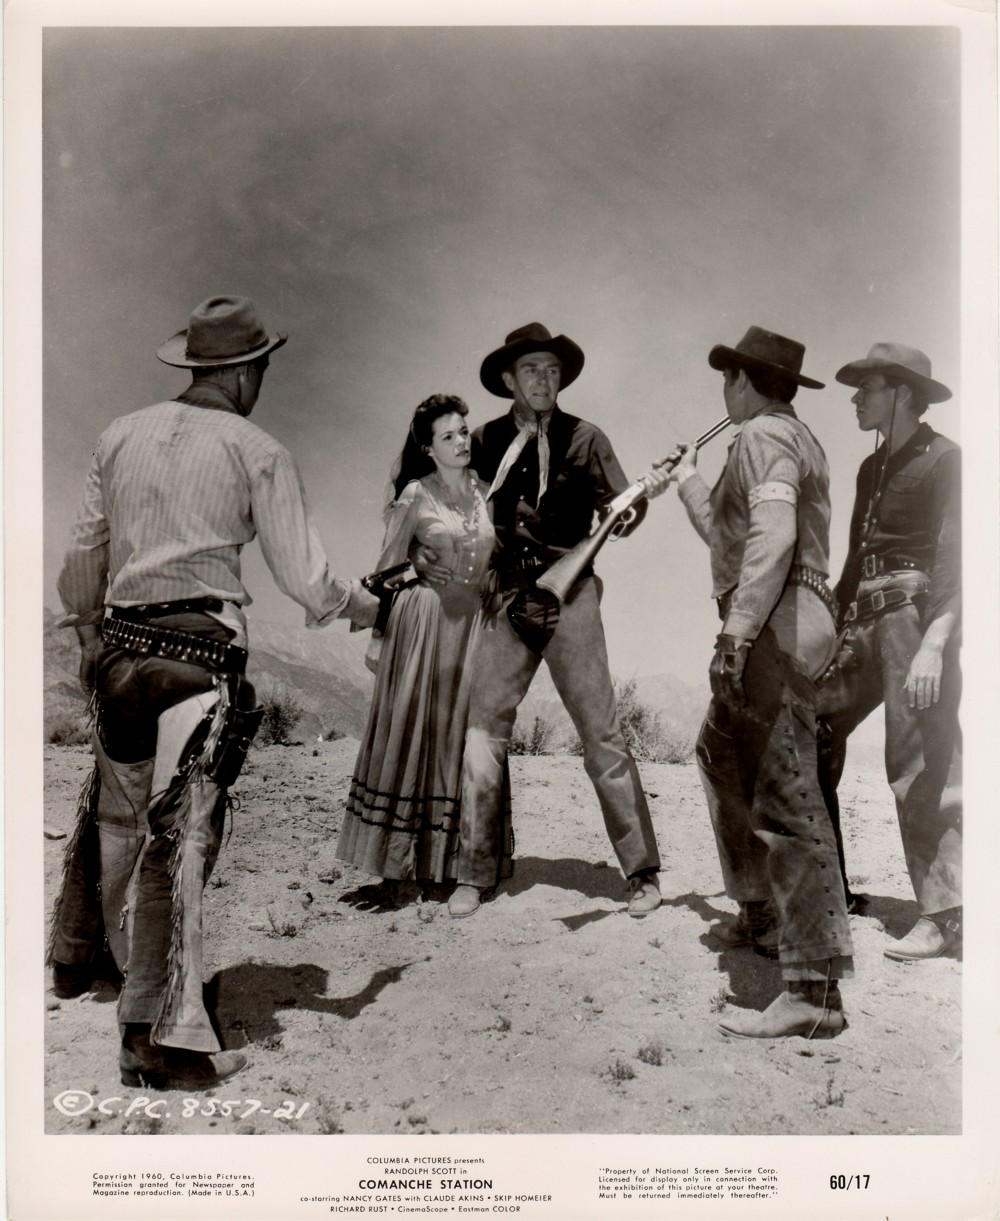 western movies since 1960 Best american indian movies and video this web site is attempting to list some of the best movies ever made about american indians in the pre-assimilation era.